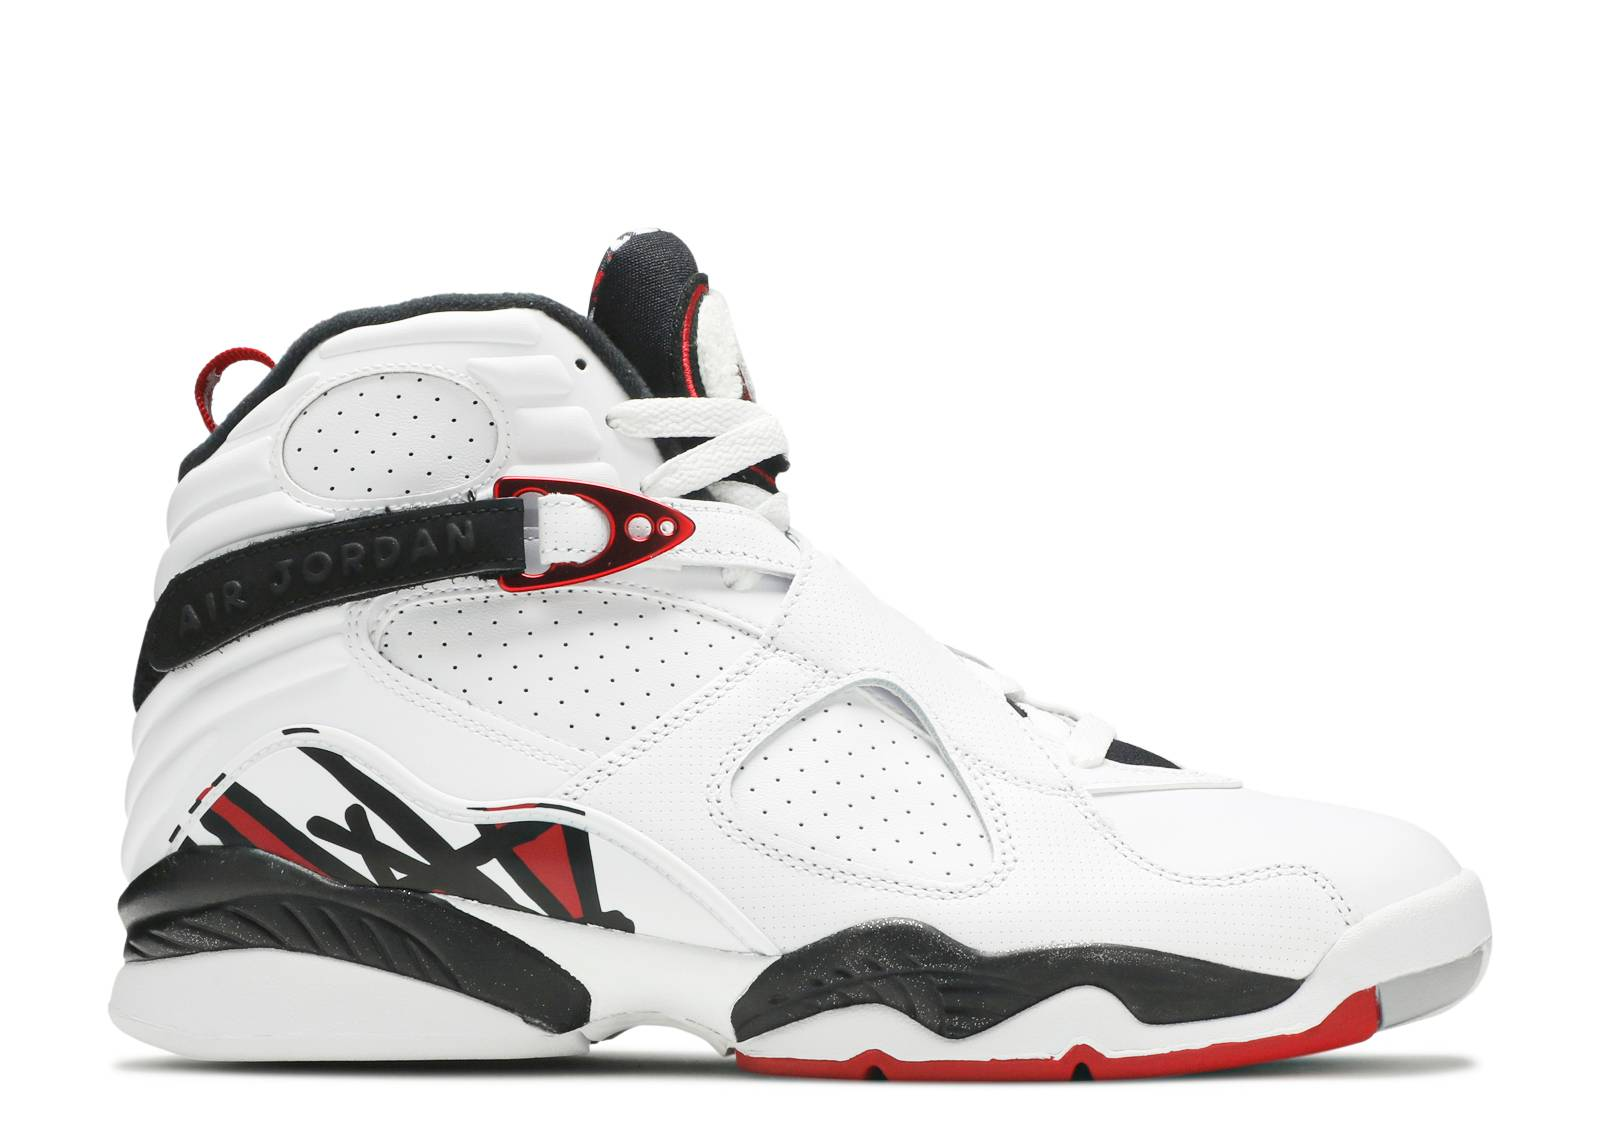 low priced 9b152 d6be6 air jordan 8 retro